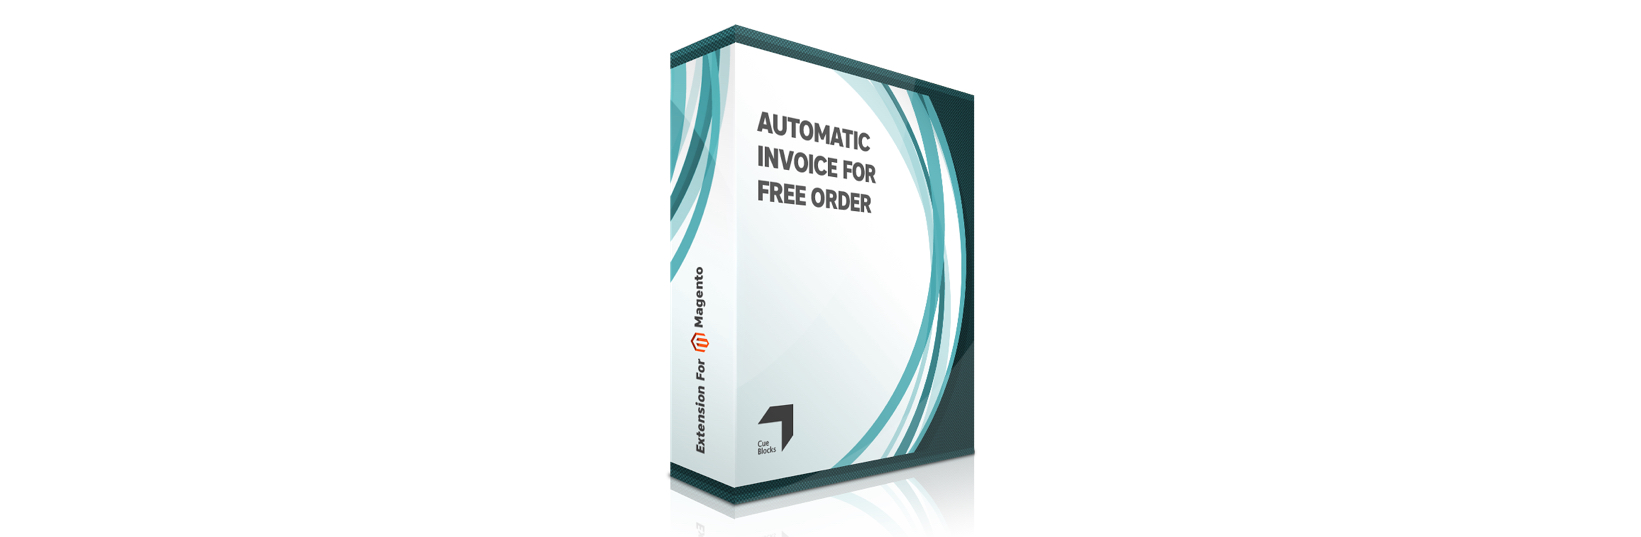 Automatic Invoice Free Orders